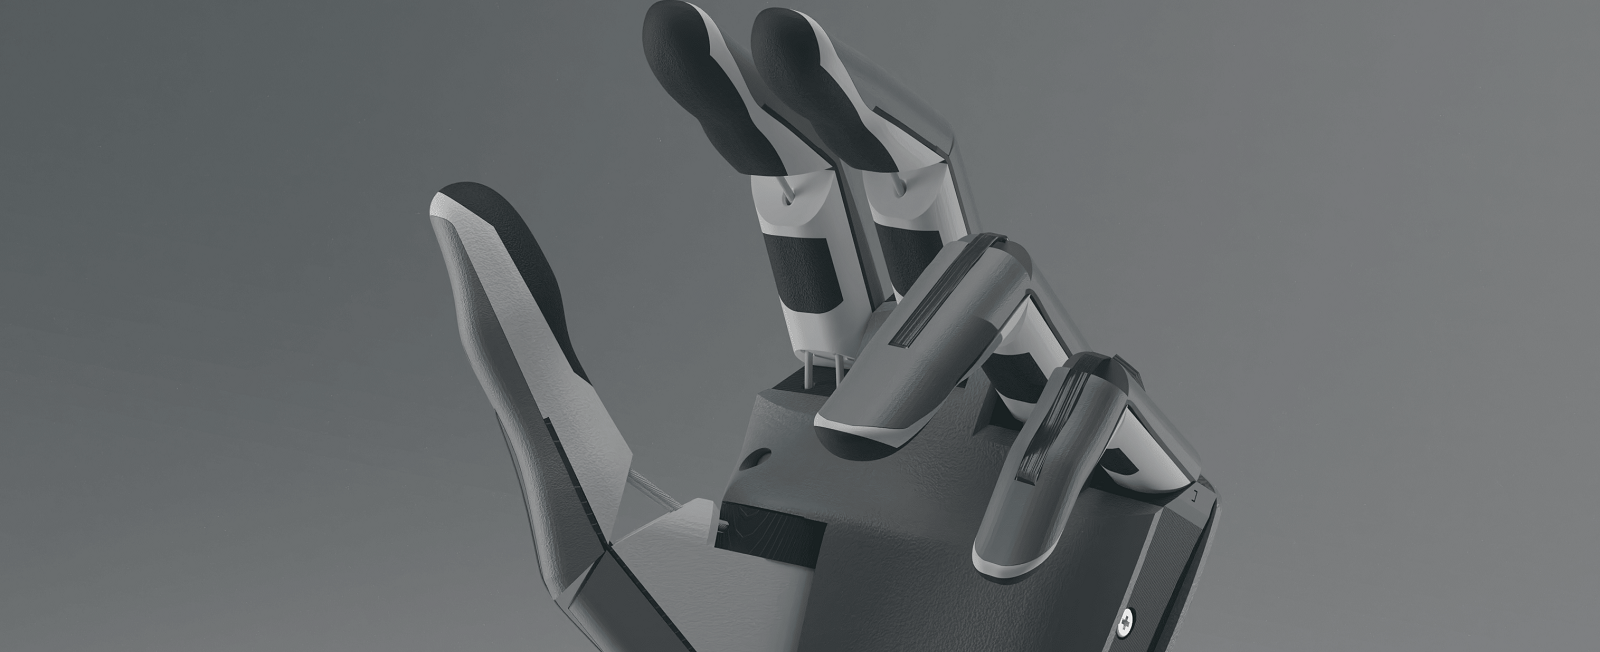 Prosthetic hand design by Metacarpal. Image by Metacarpal